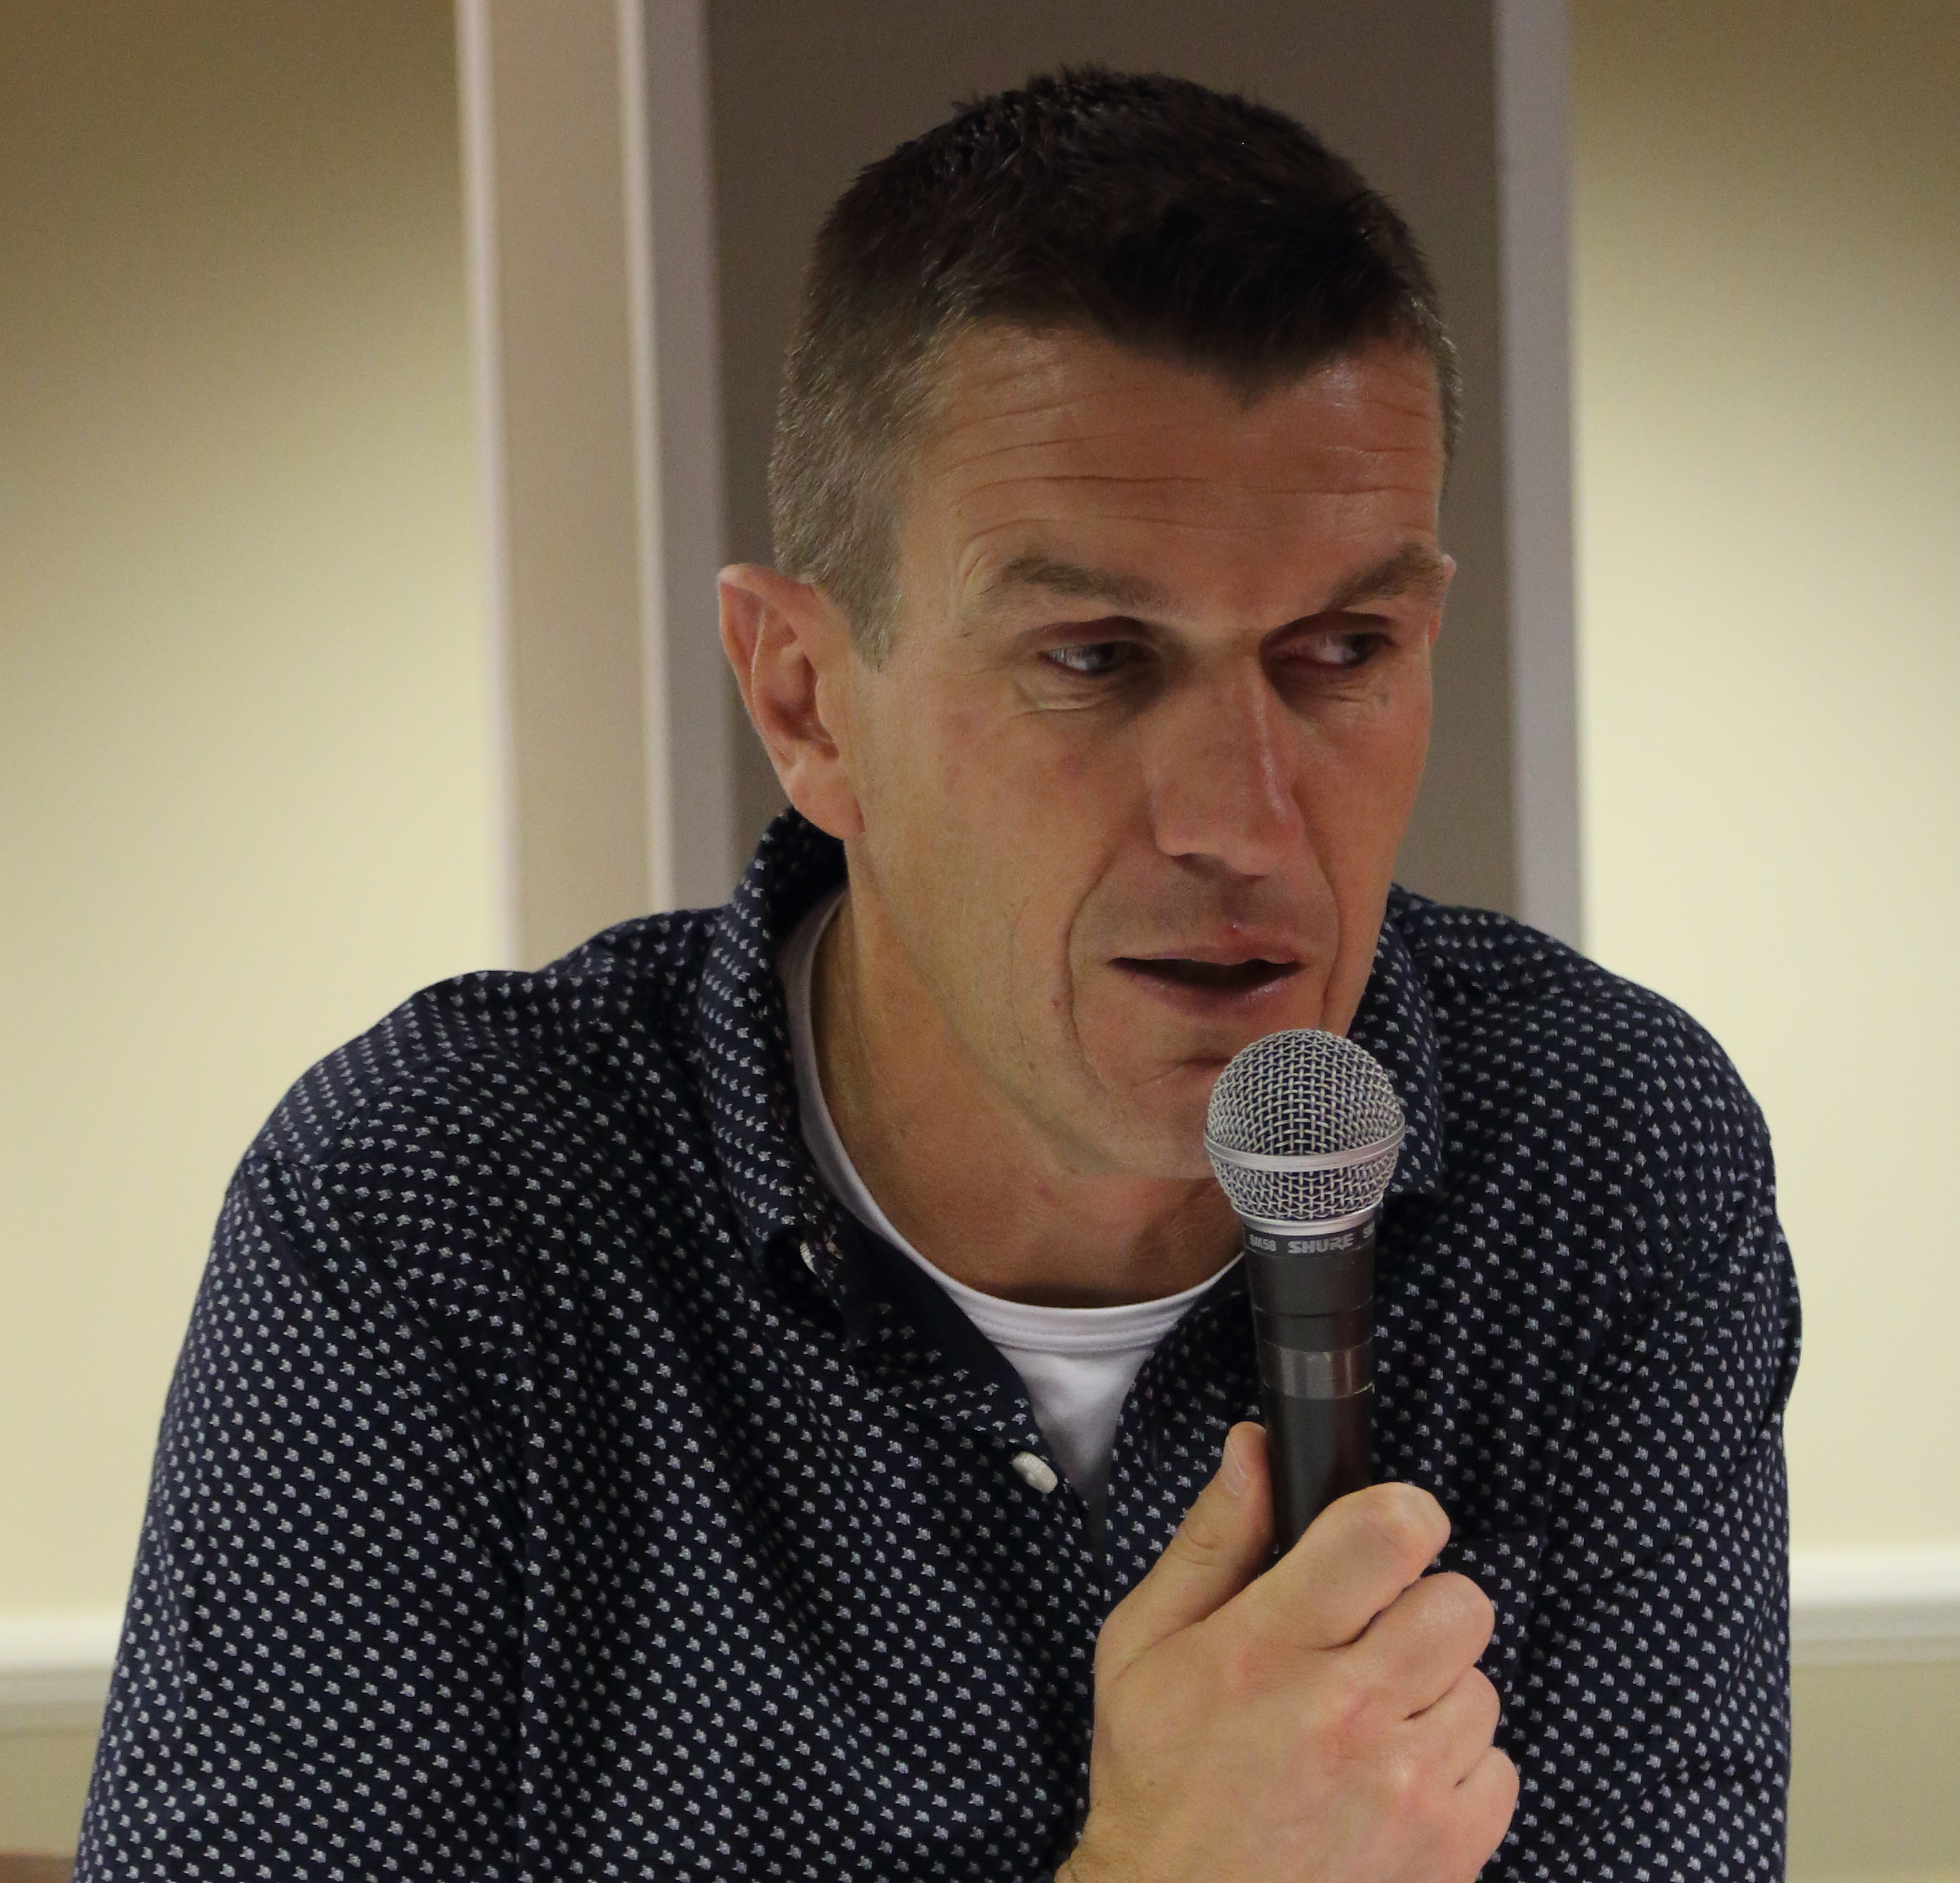 Marinus Dijkhuizen at Bees Forum 2015 Sept